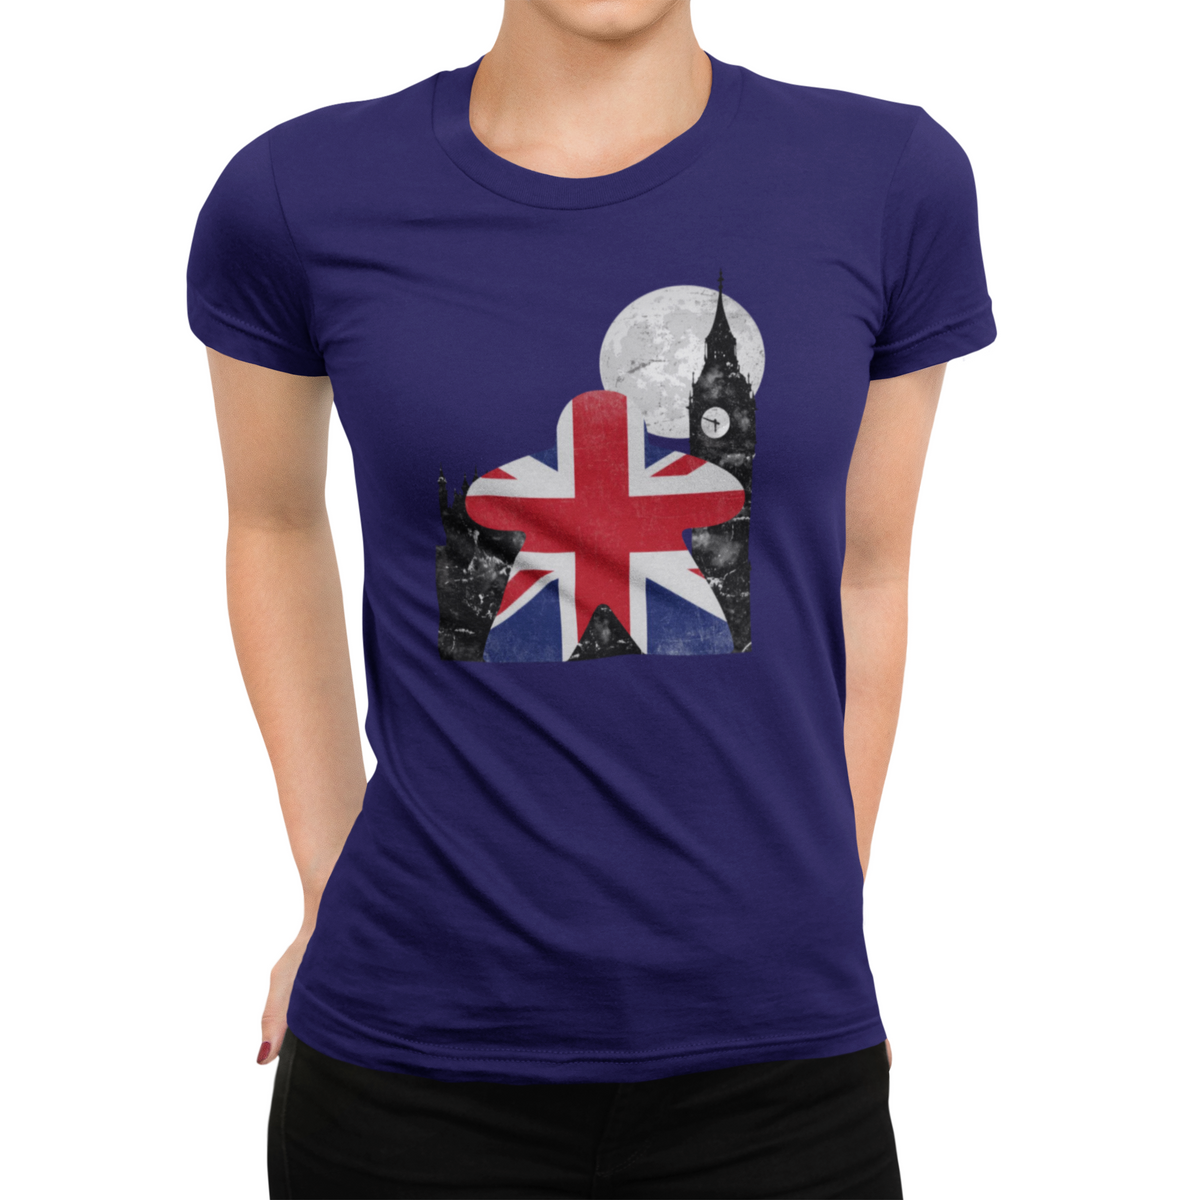 Union Jack British Flag Meeple Board Game T-Shirt